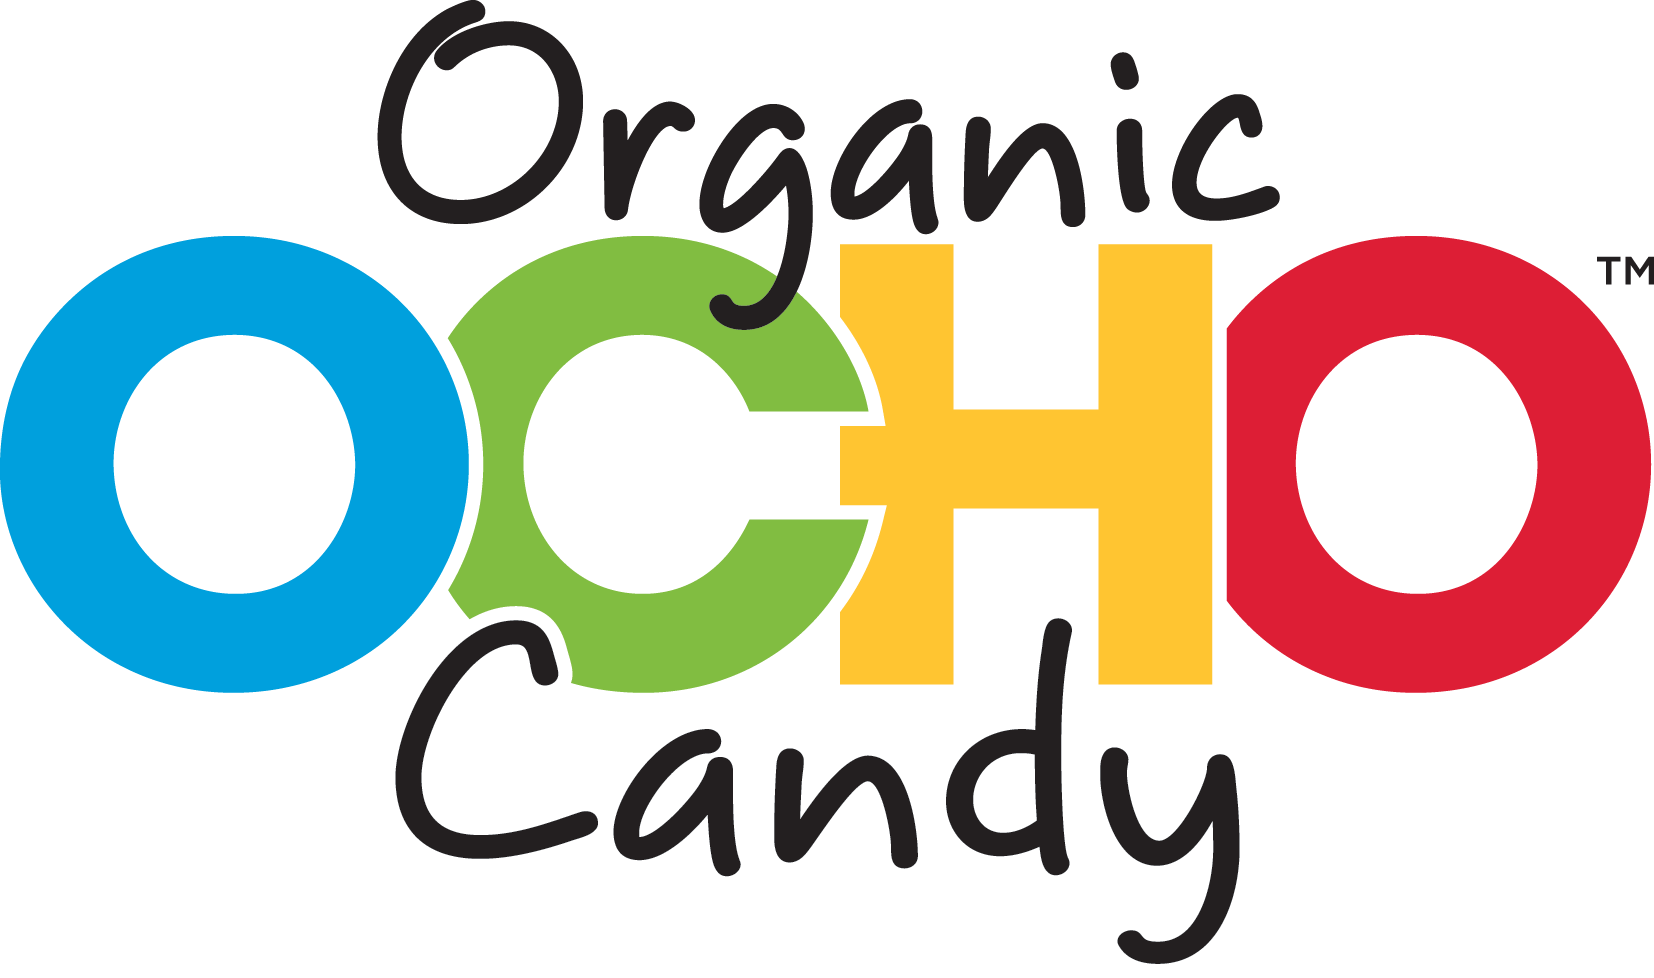 OCHO Candy Color Logo_Jan 2019.png